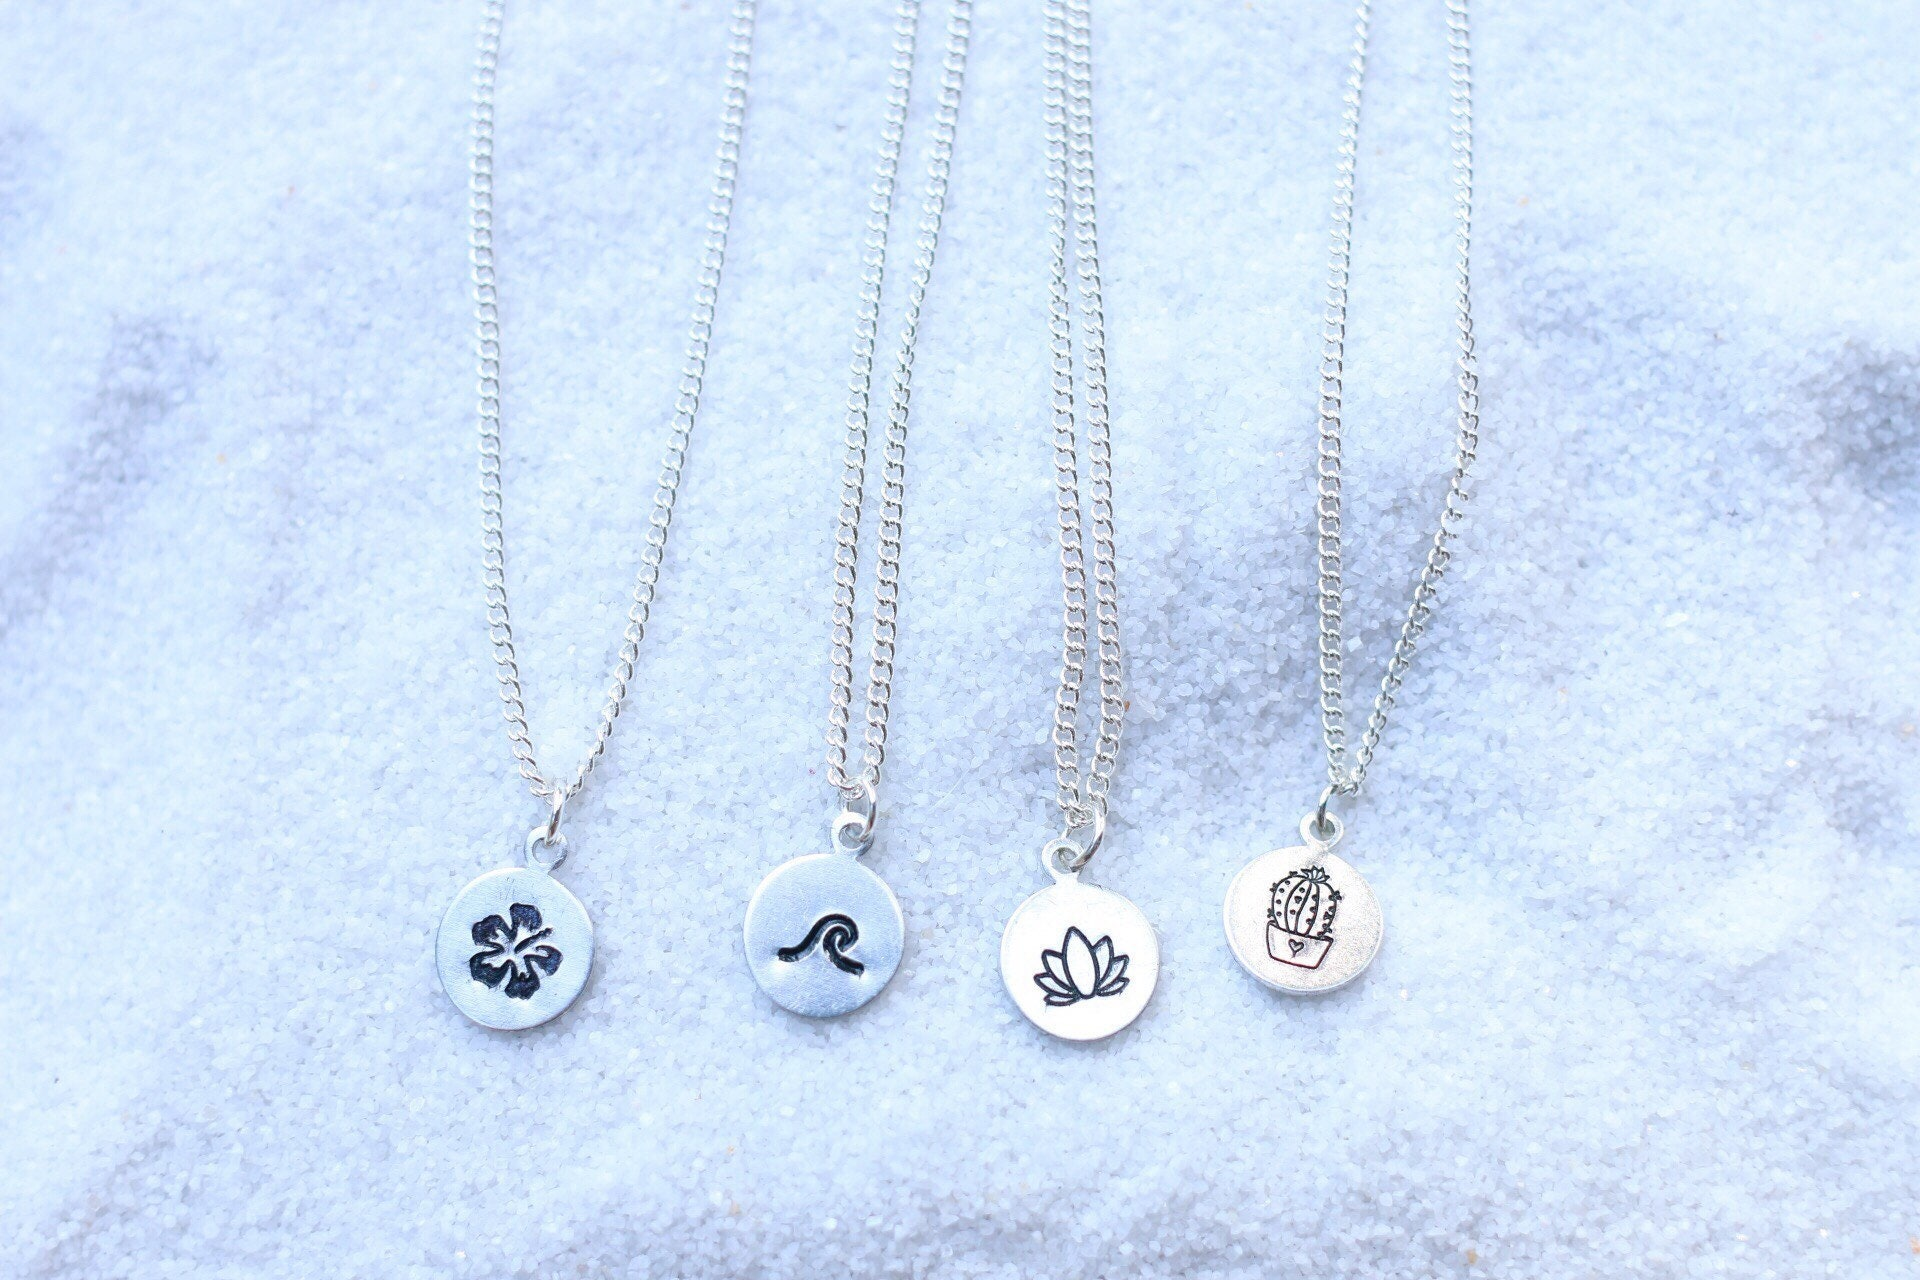 Dainty hand stamped necklaces beach jewelry wave necklace dainty hand stamped necklaces beach jewelry wave necklace lotus flower necklace cactus necklace hibiscus necklace izmirmasajfo